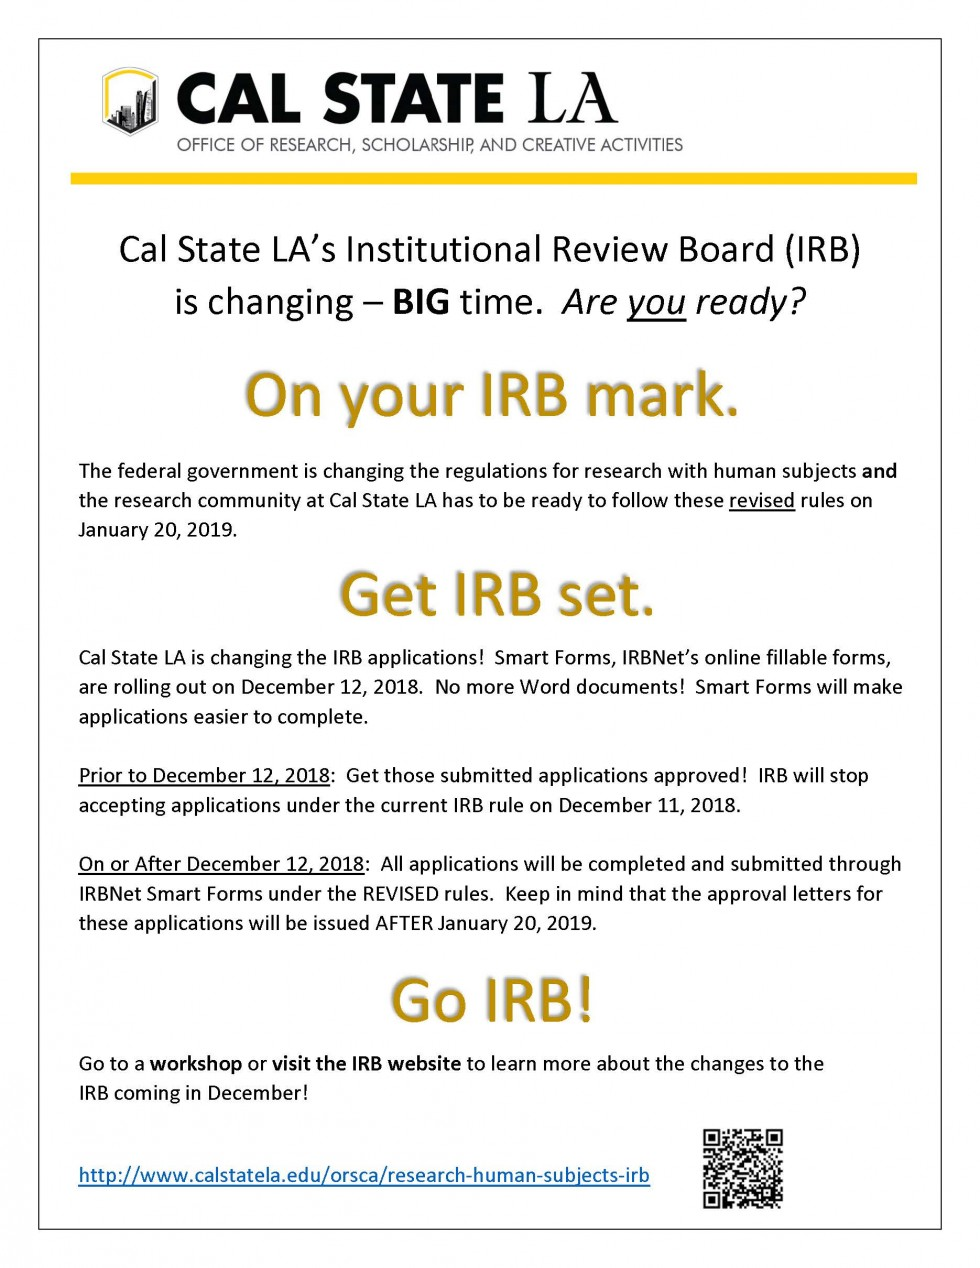 IRB Campus Announcement Flyer